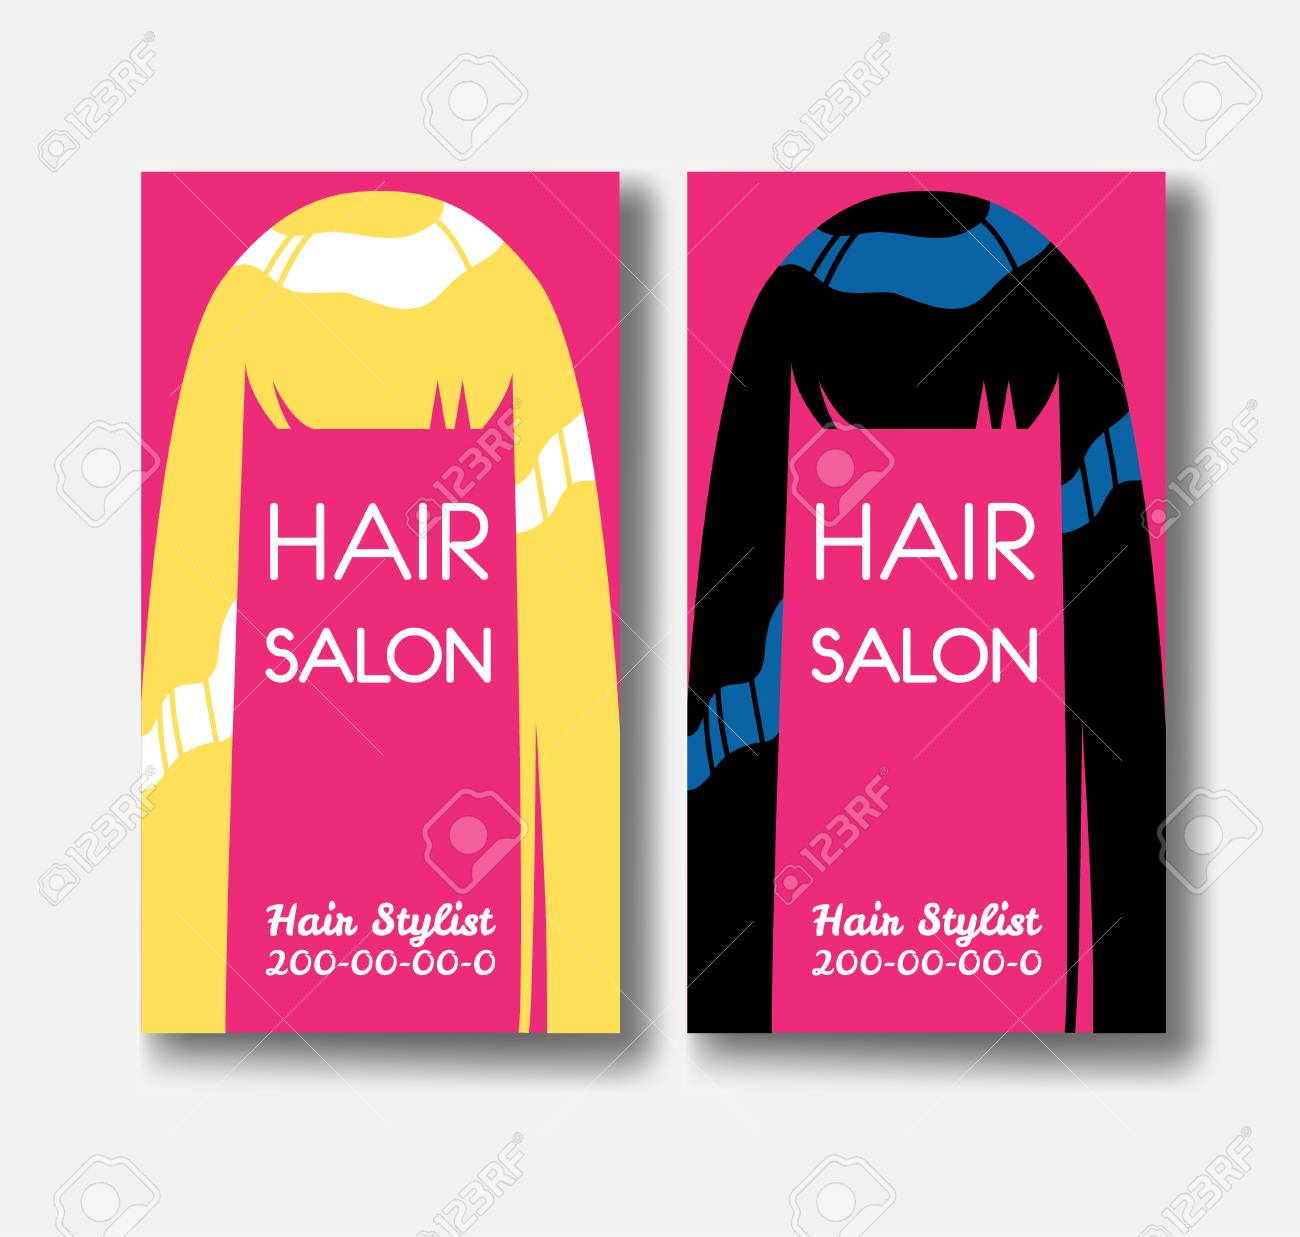 Hair salon business card templates with blonde hair and black hair salon business card templates with blonde hair and black ha stock vector 78080045 wajeb